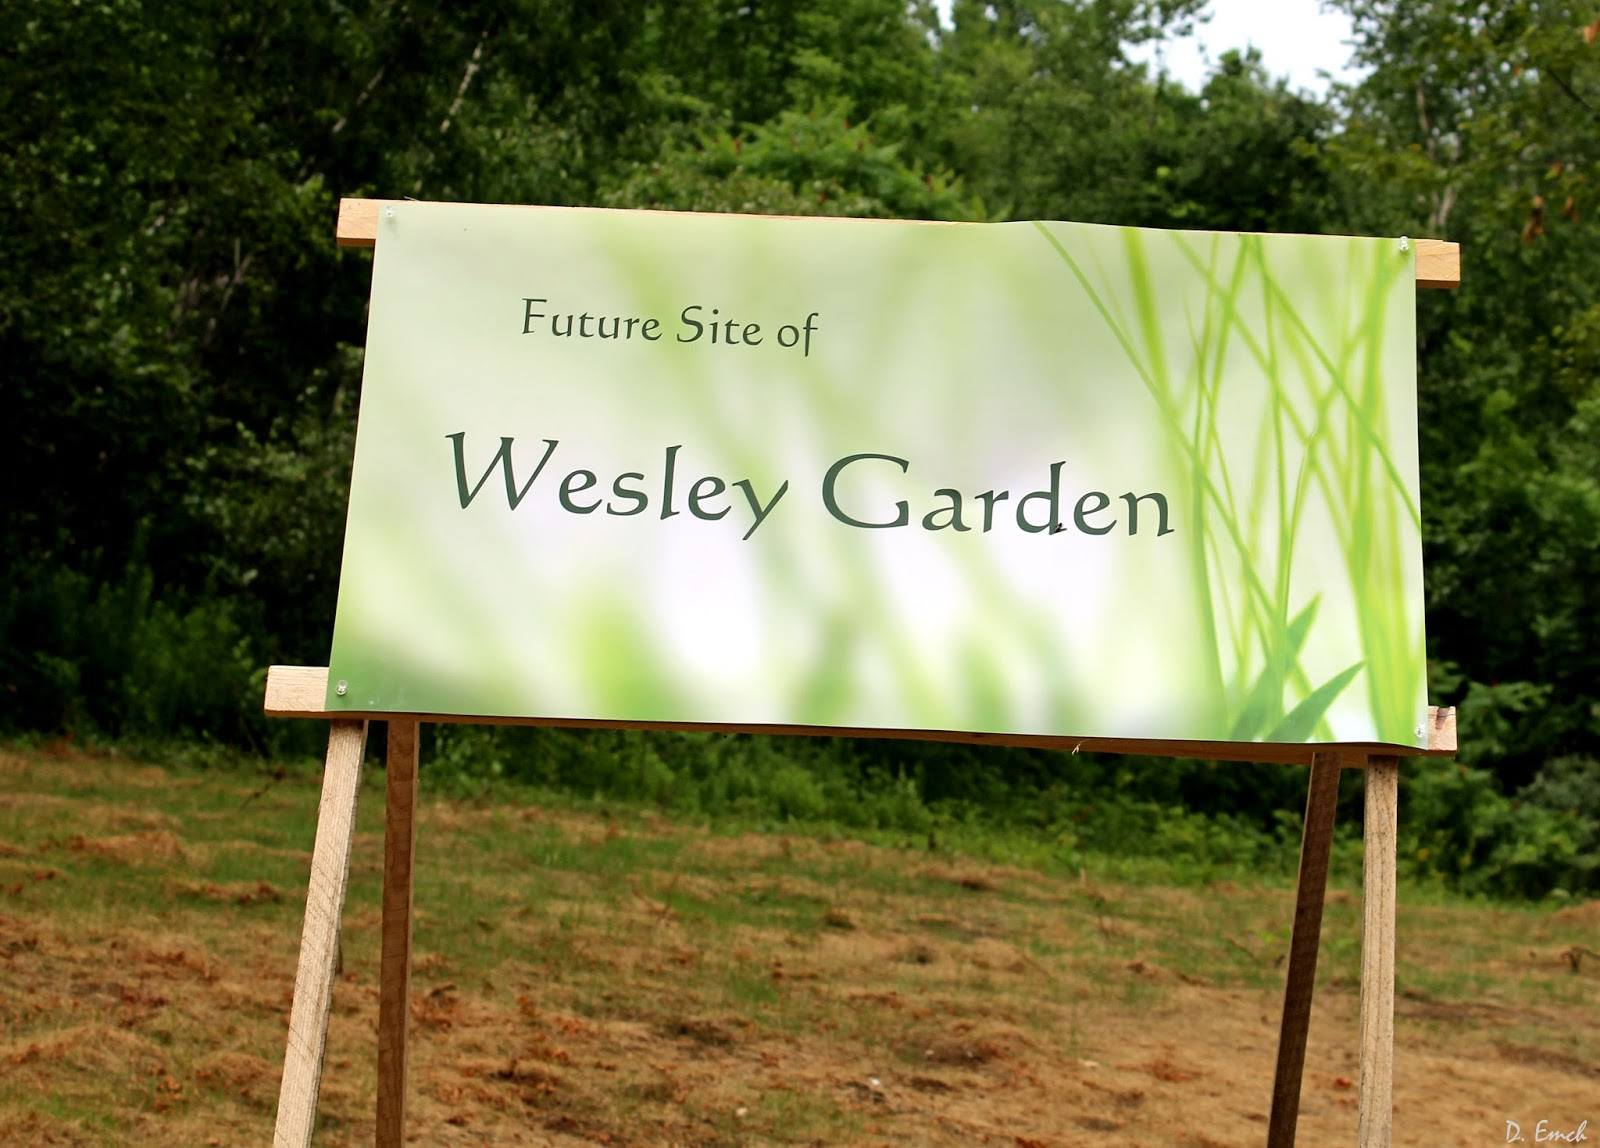 then we are off to the methodist church where they have acquired six acres to be used as a formal garden - Wesley Gardens Nursing Home